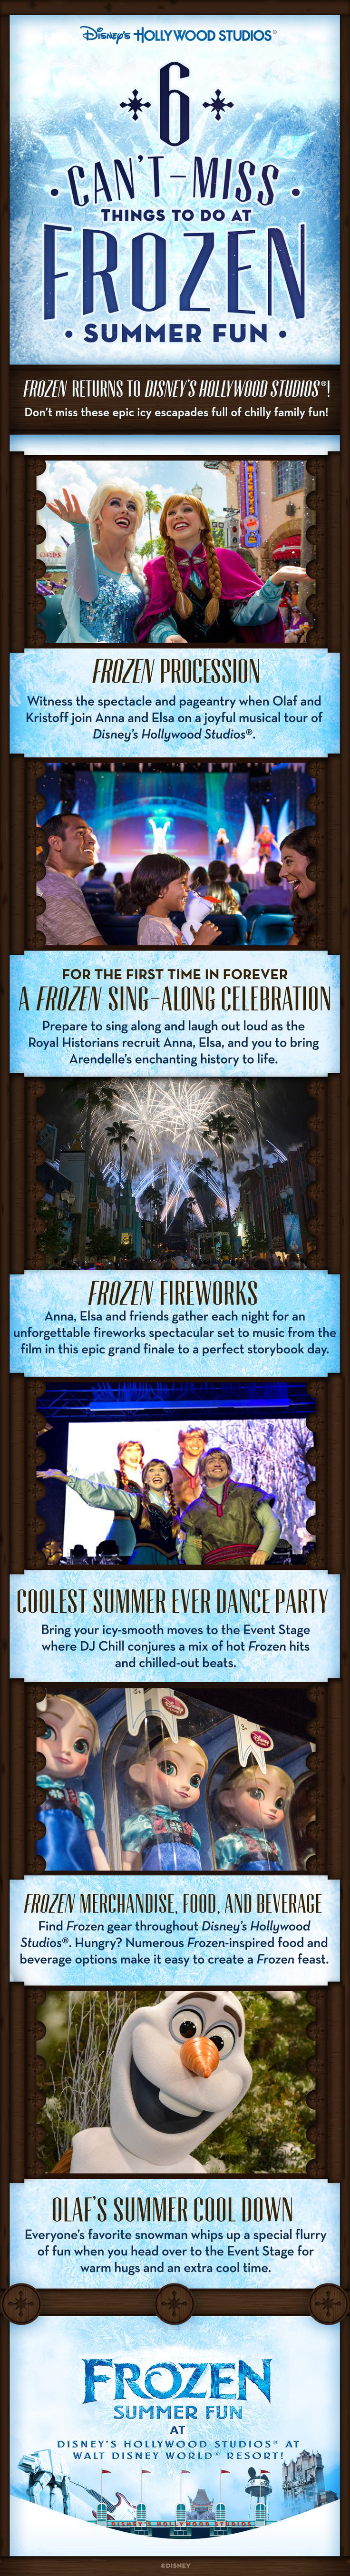 Don't miss Frozen Summer Fun at Disney's Hollywood Studios from June 17 - September 7, 2015! Enjoy a Frozen fireworks show, royal welcome, sing-along celebration, DJ dance party, and special merchandise and food & beverage offerings. Join Anna, Elsa, Kristoff, and of course Olaf for family fun on your Walt Disney World vacation!